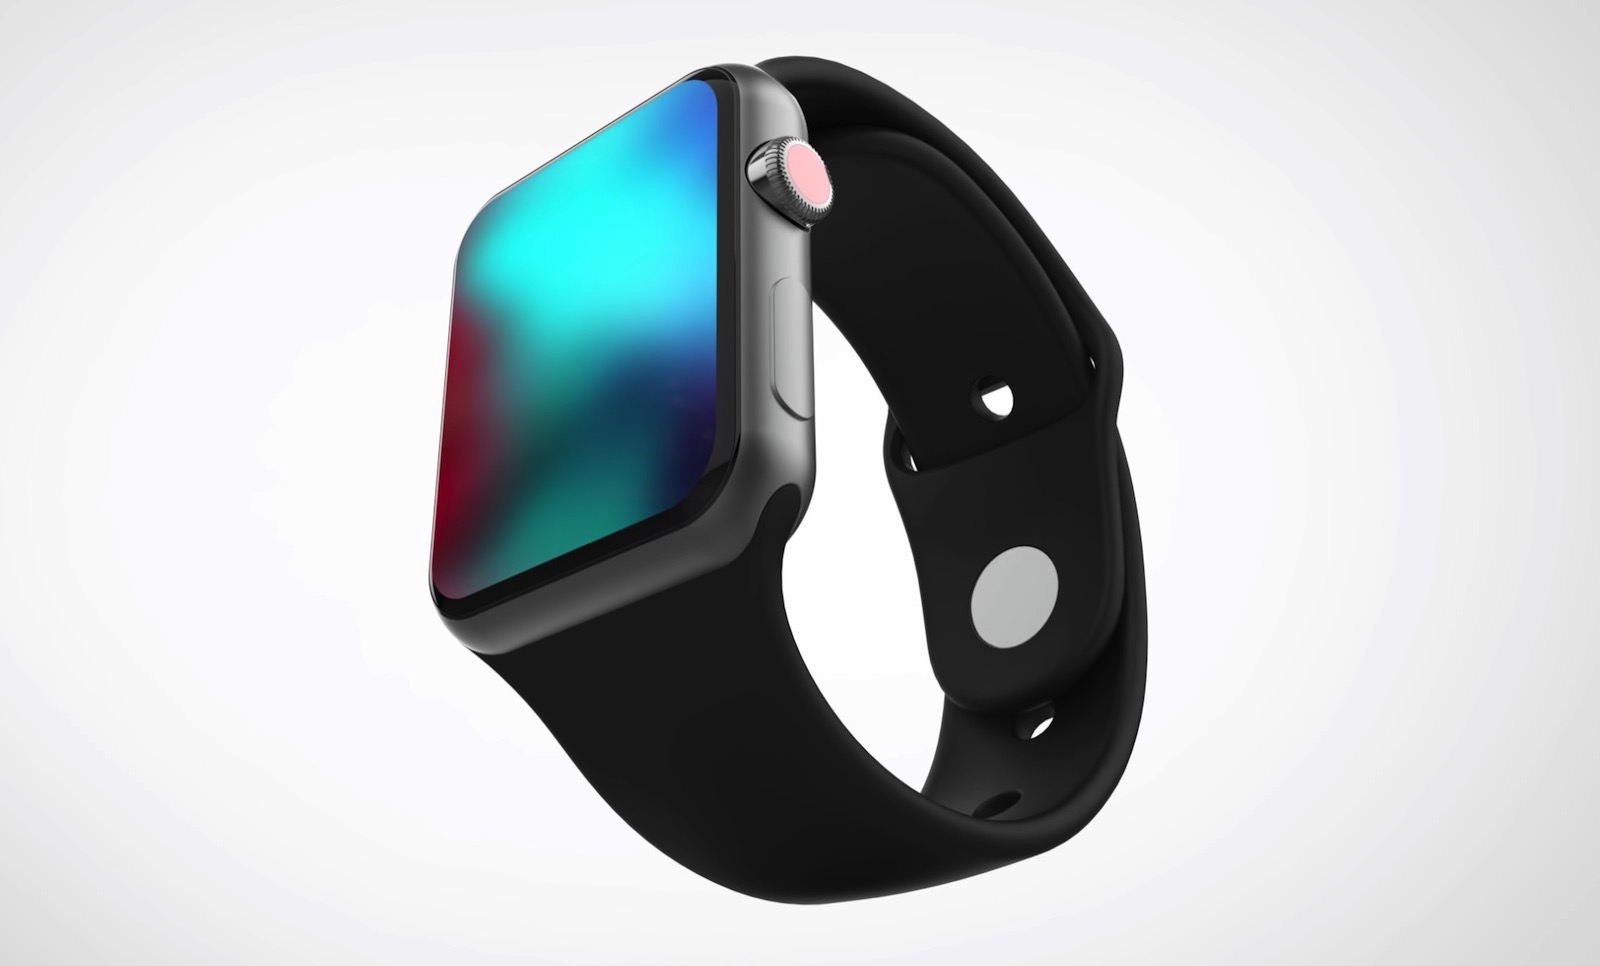 Apple Watch Series 4 Concept Image